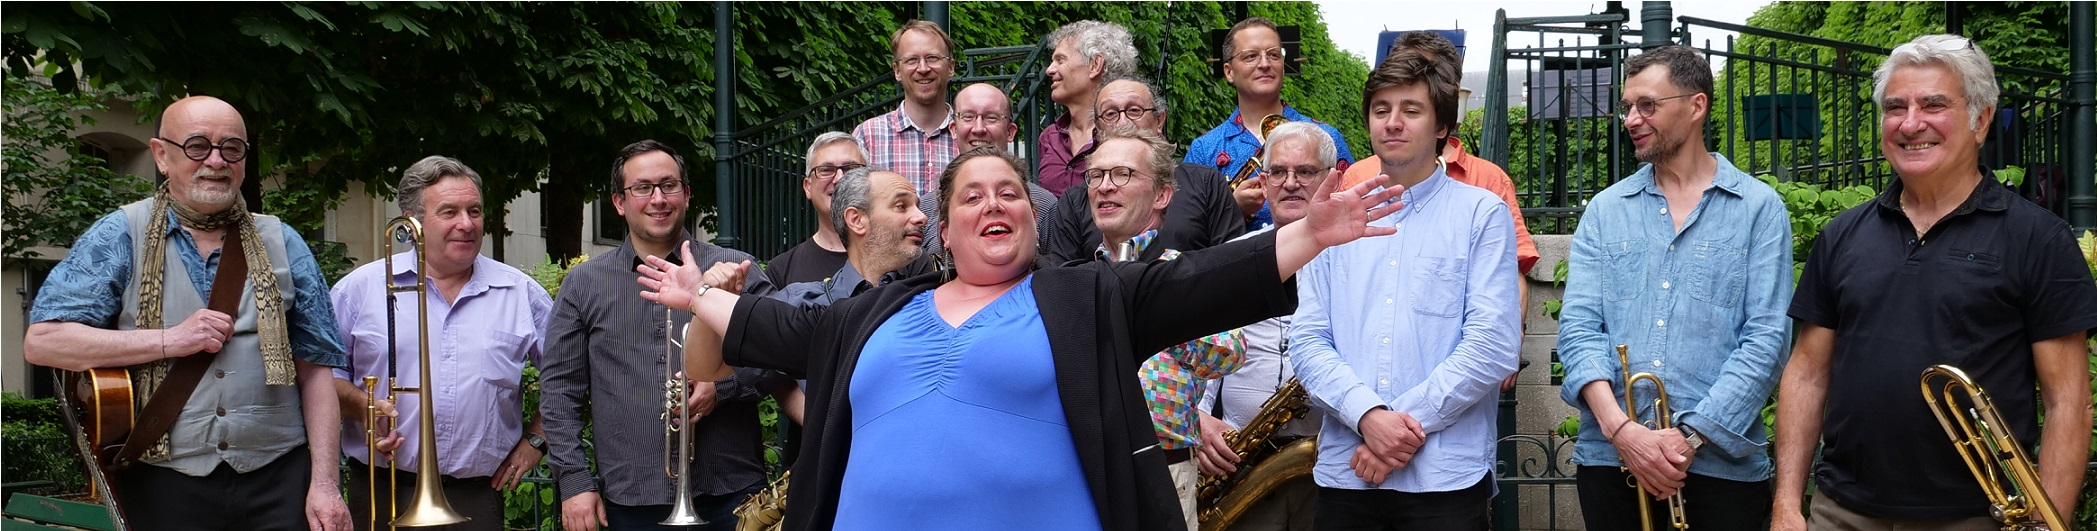 Le Big Band du 15eme arrondissement